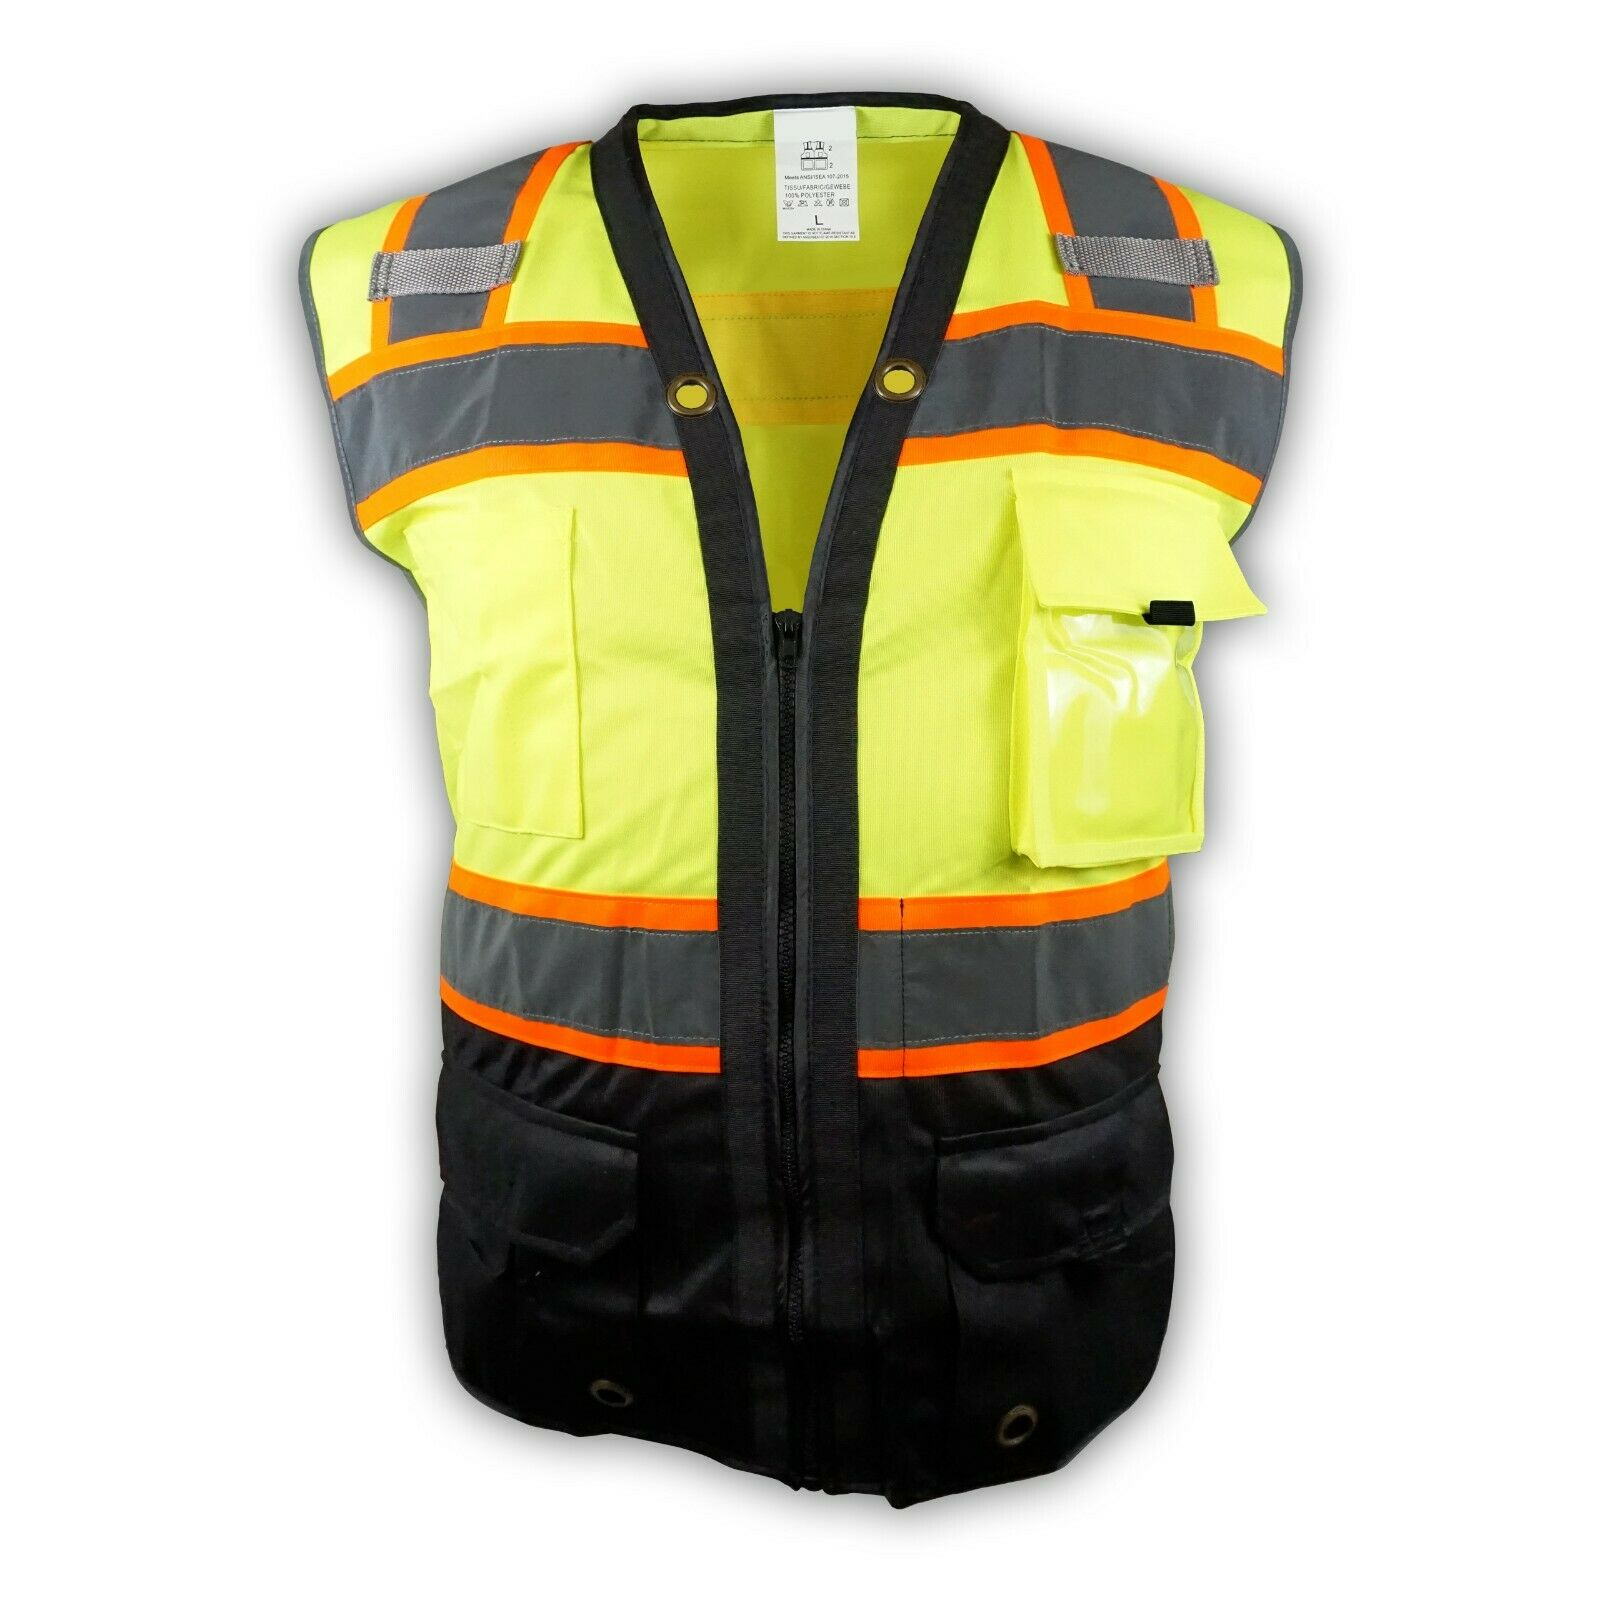 Surveyor Black/ Lime Two Tones Safety Vest, ANSI/ ISEA 107-2